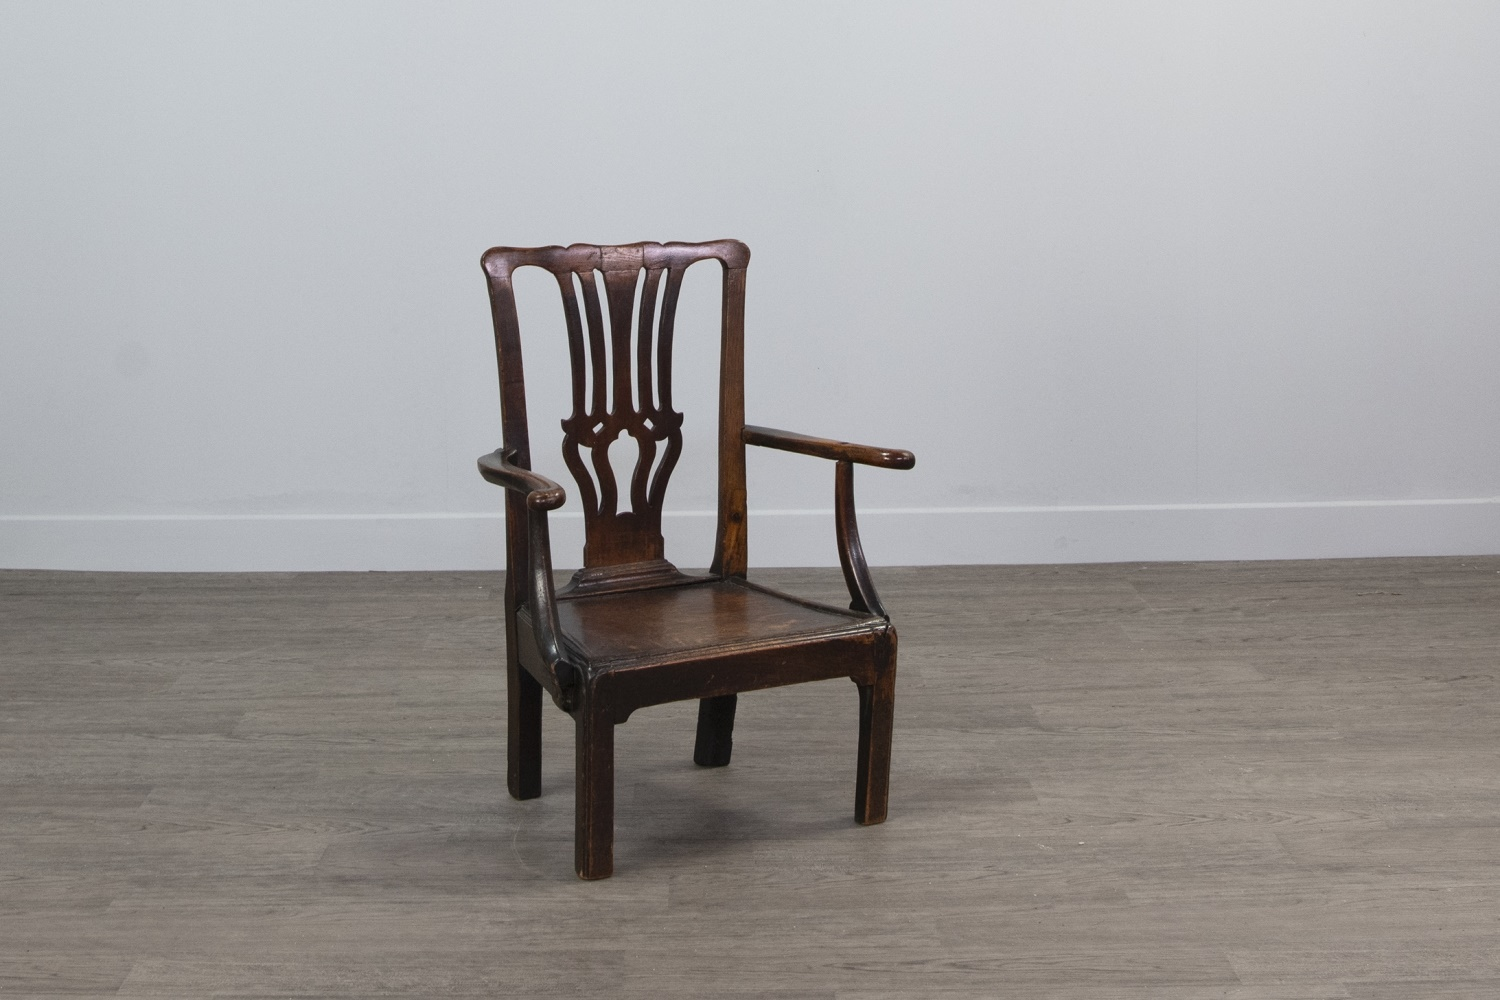 A GEORGE III CHILDS' ELM AND OAK OPEN ELBOW CHAIR - Image 2 of 2